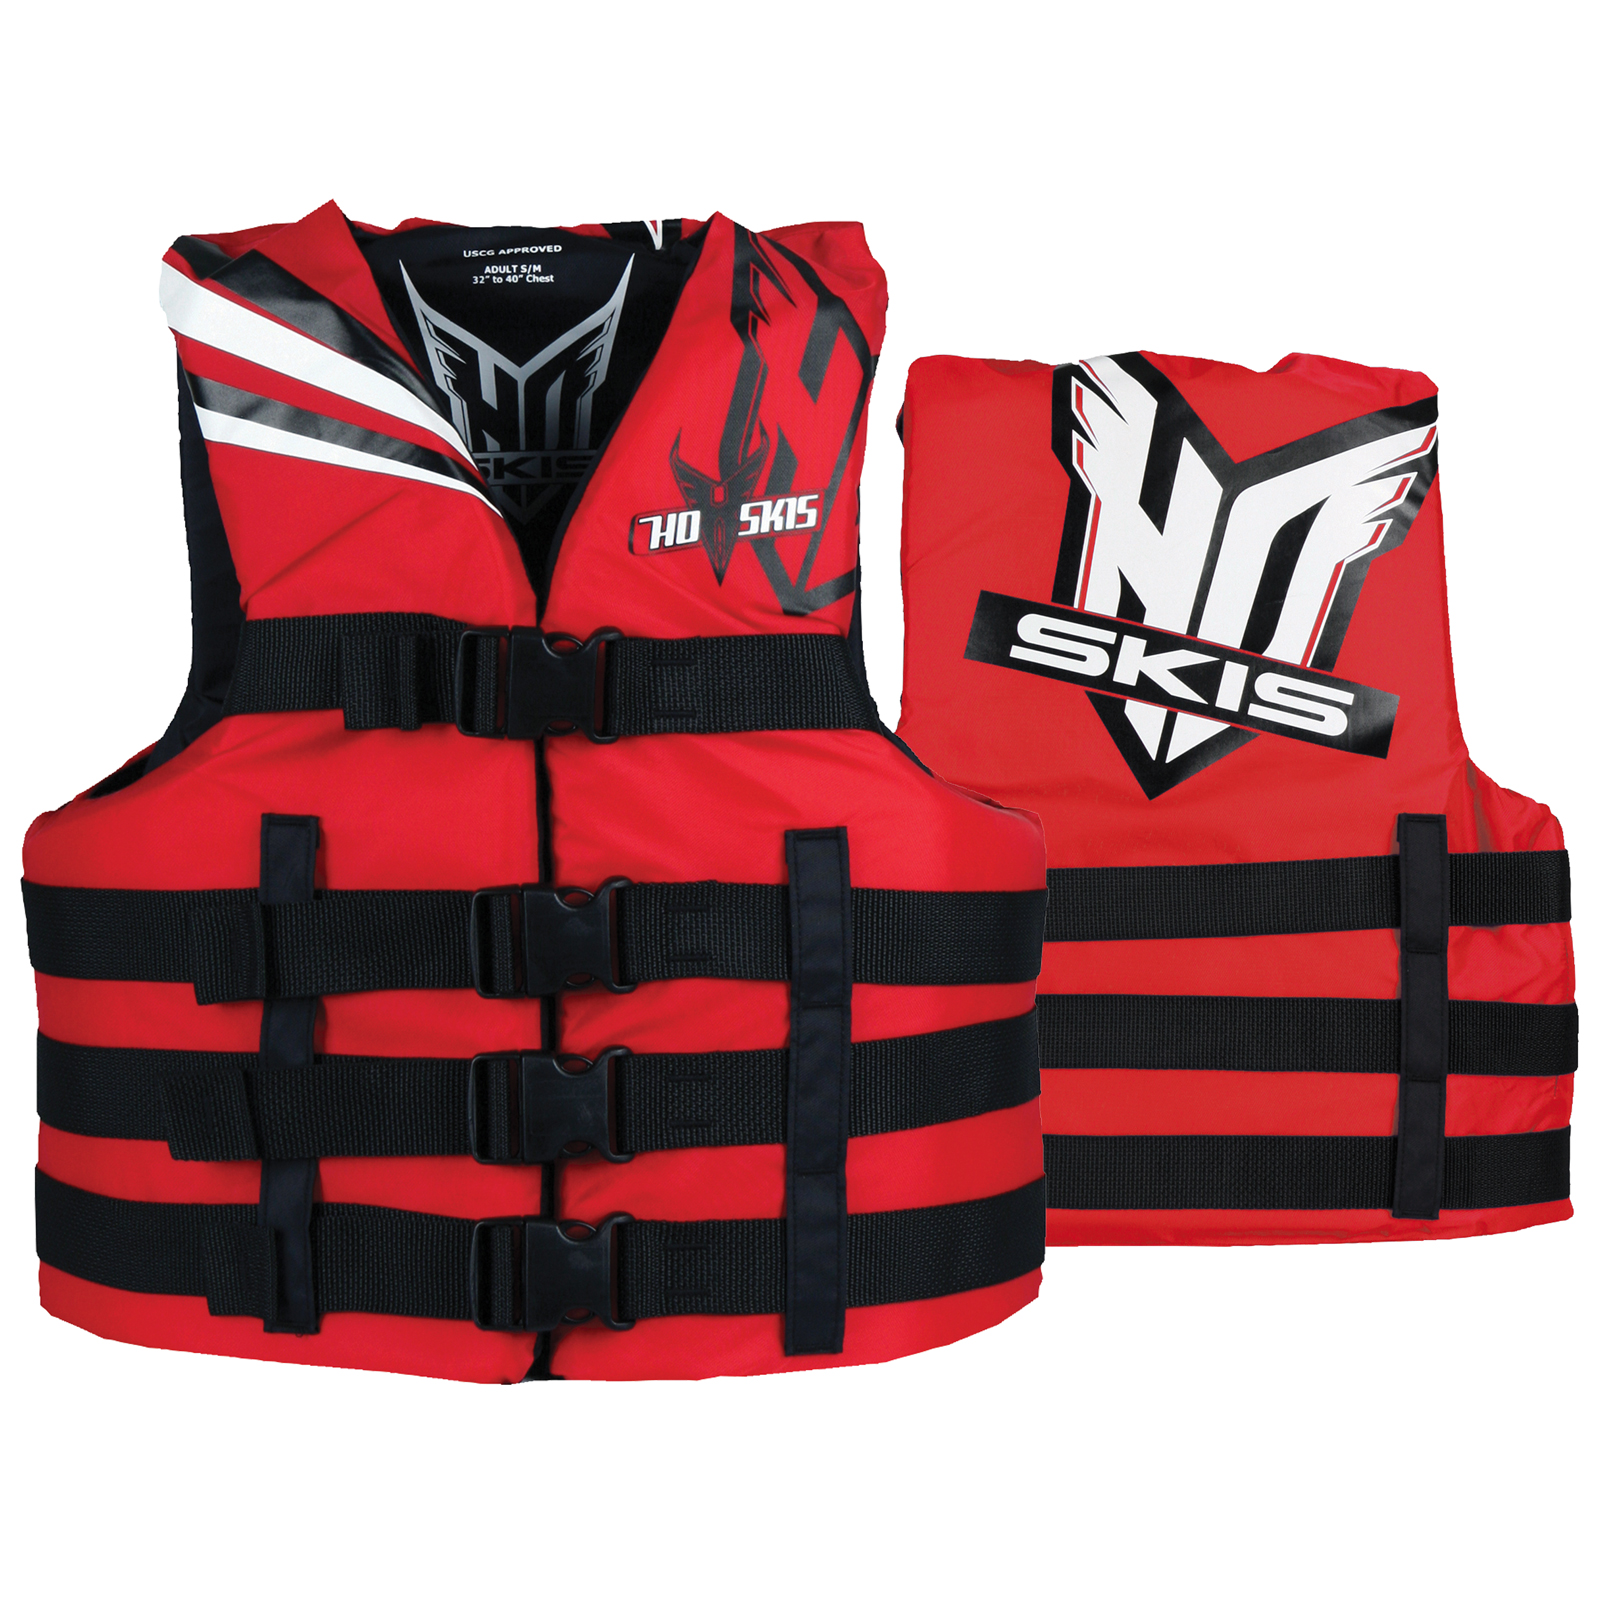 UNIVERSAL LIFE VEST - RED HO SPORTS 2018